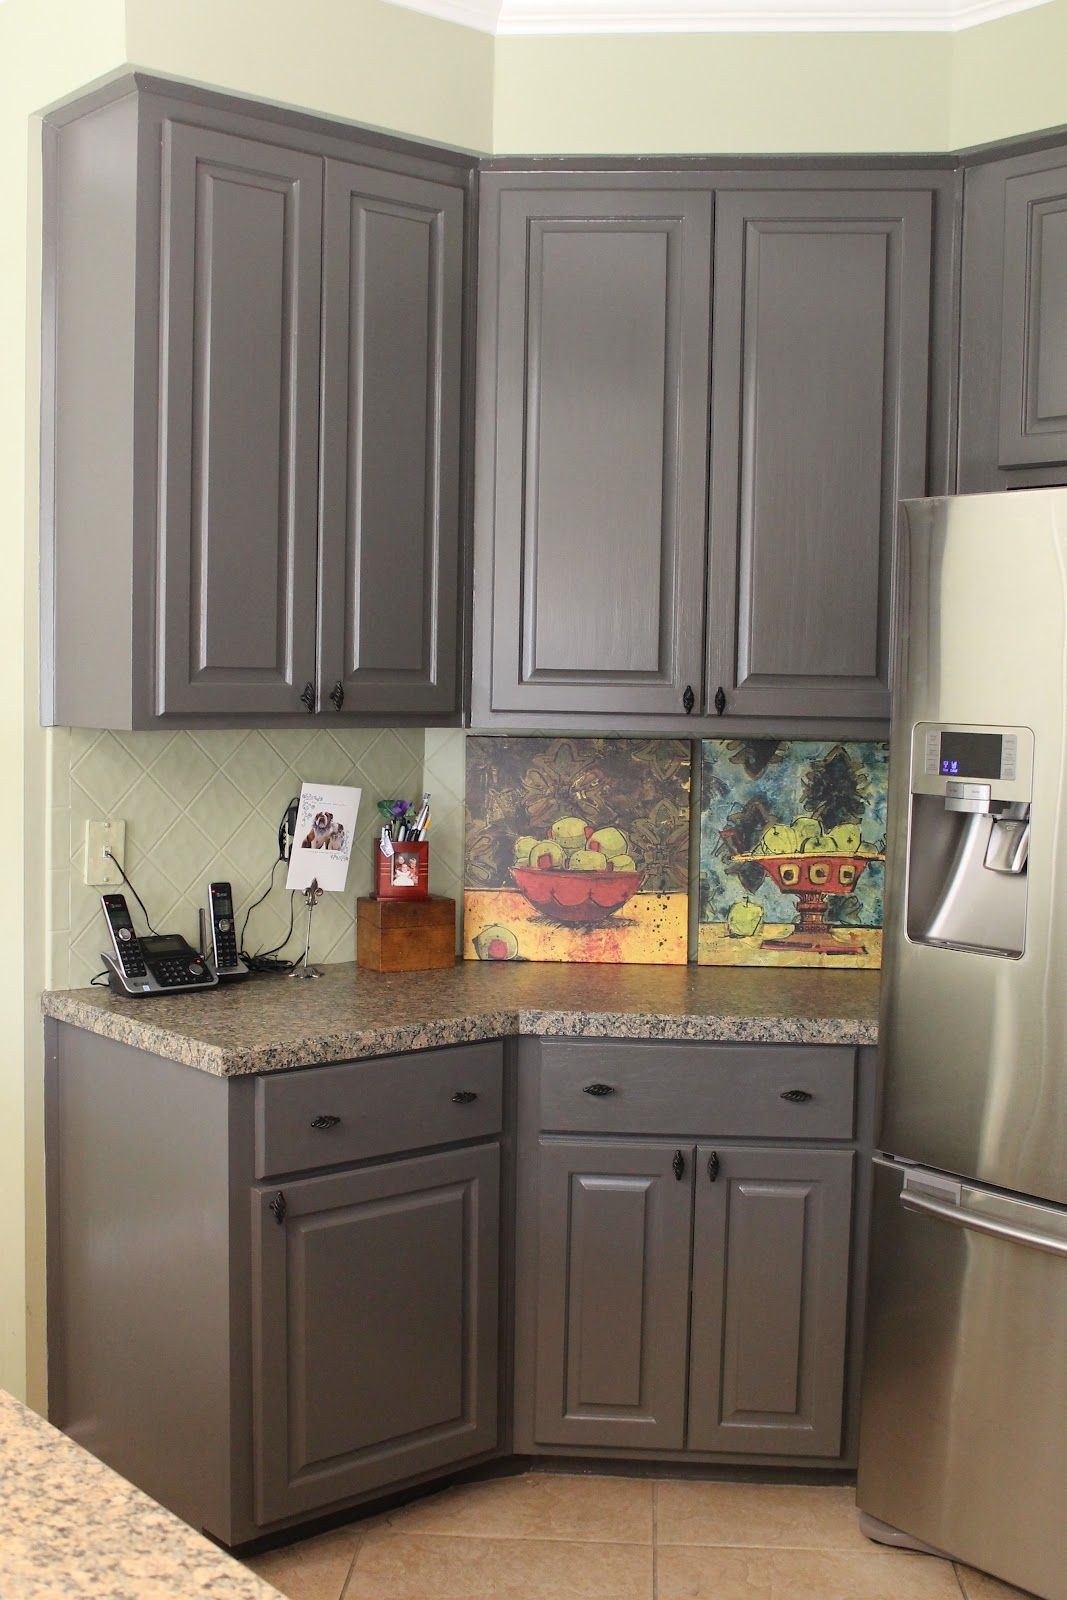 Kitchen cabinets painted dark grey - Painting Kitchen Cabinet Hardware Kitchen